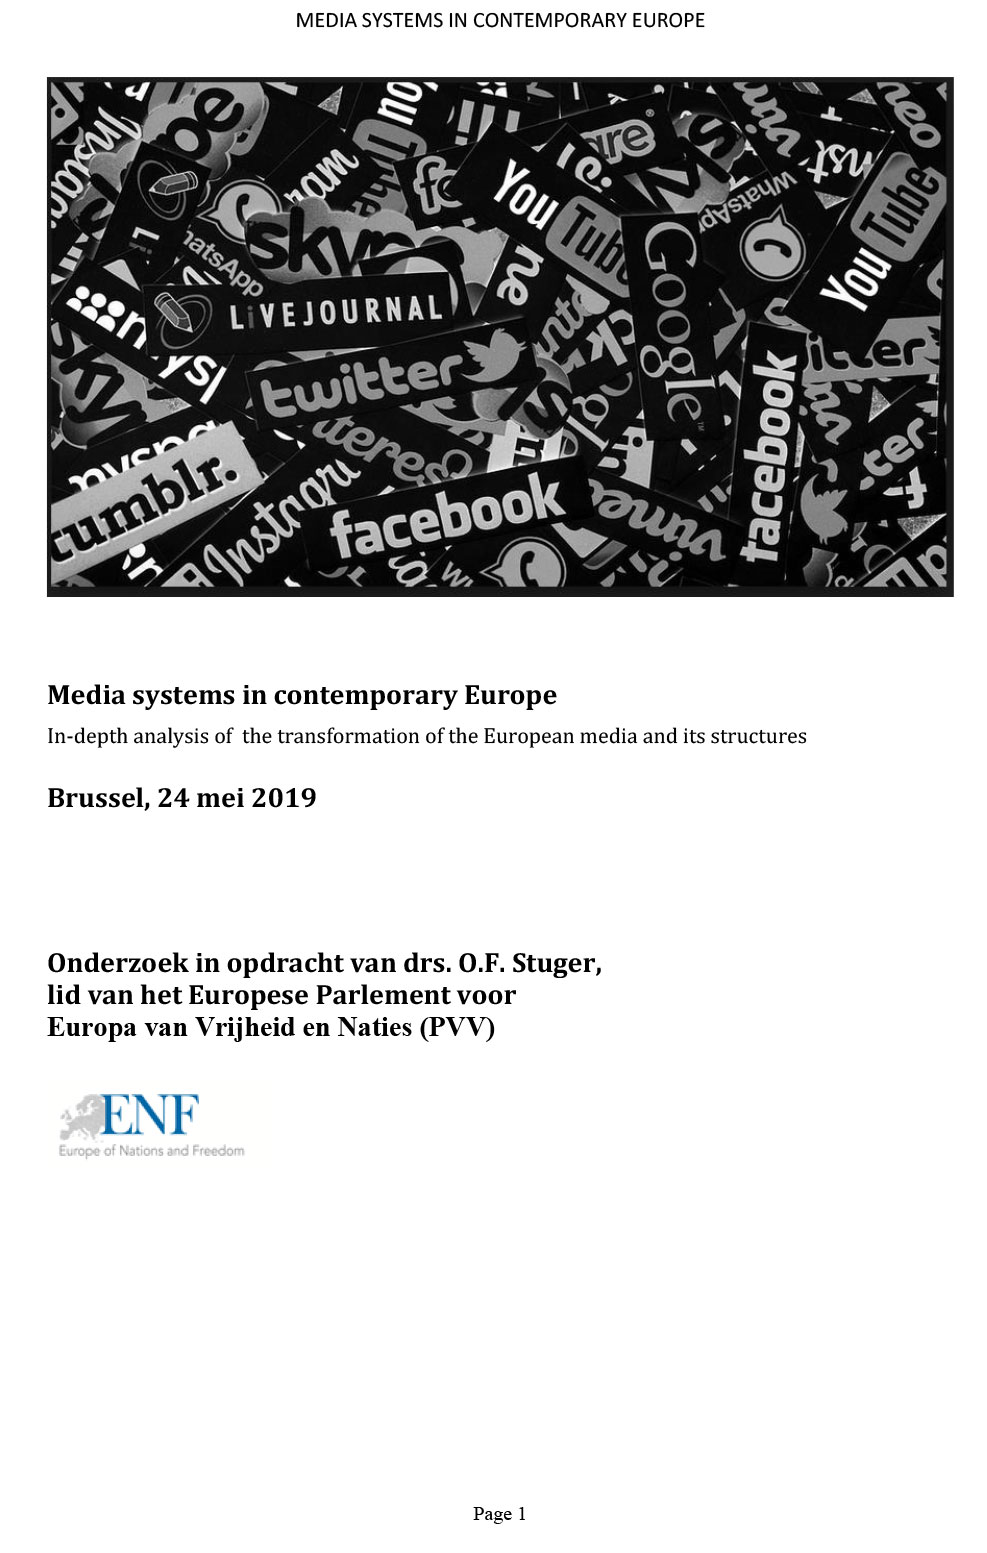 Media systems in contemporary Europe